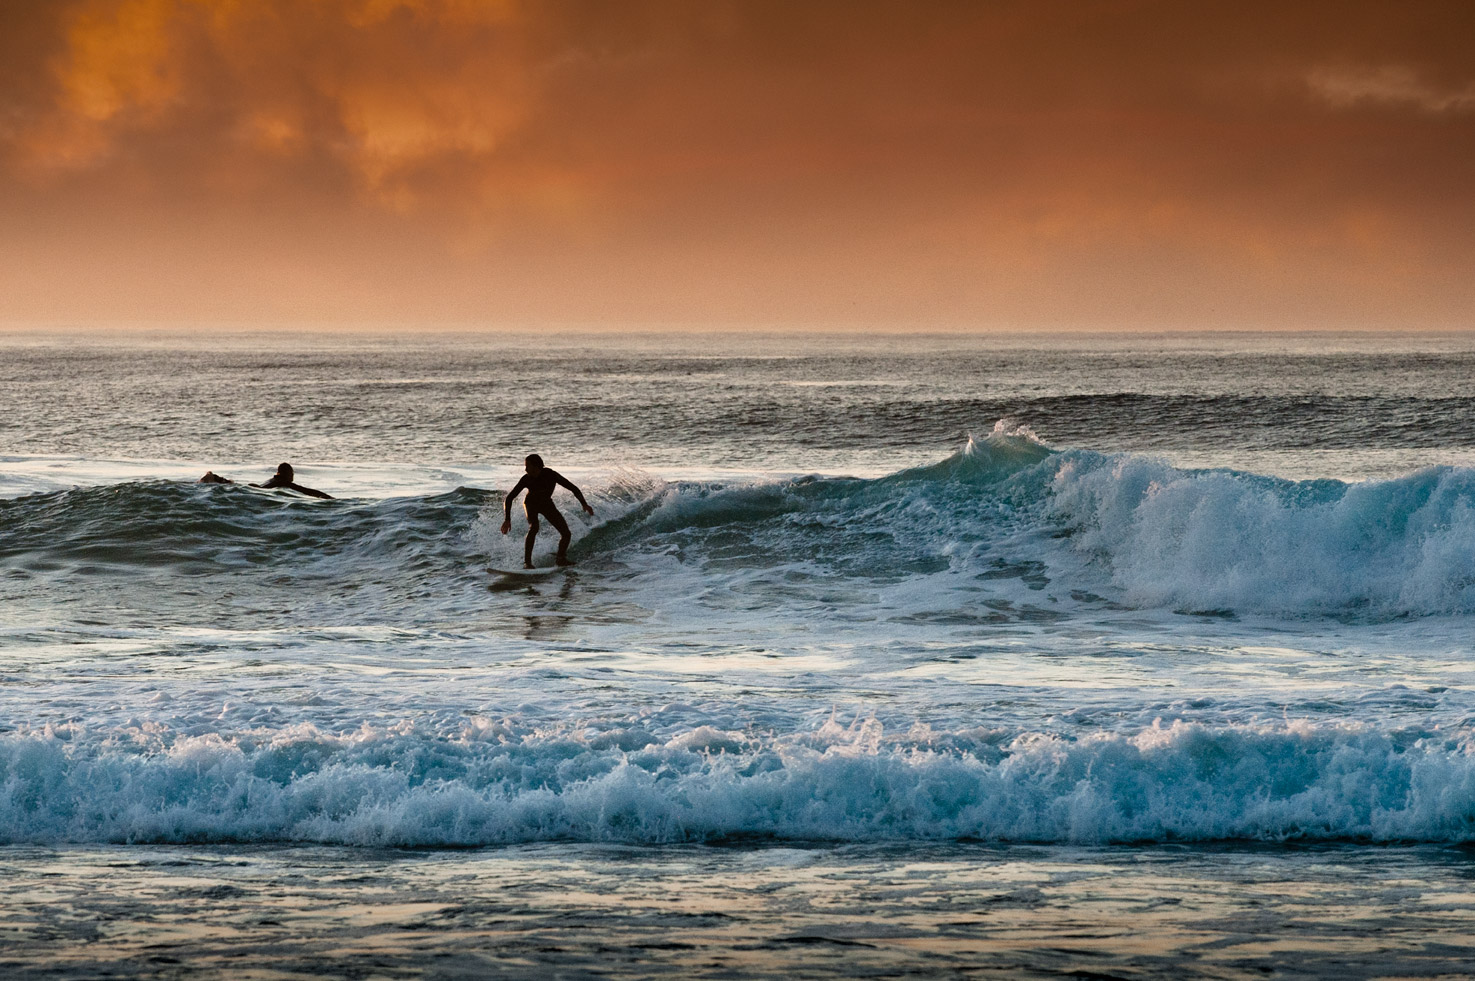 A surfer rides along a wave at sunset at Asilomar State Beach, Pacific Grove, California